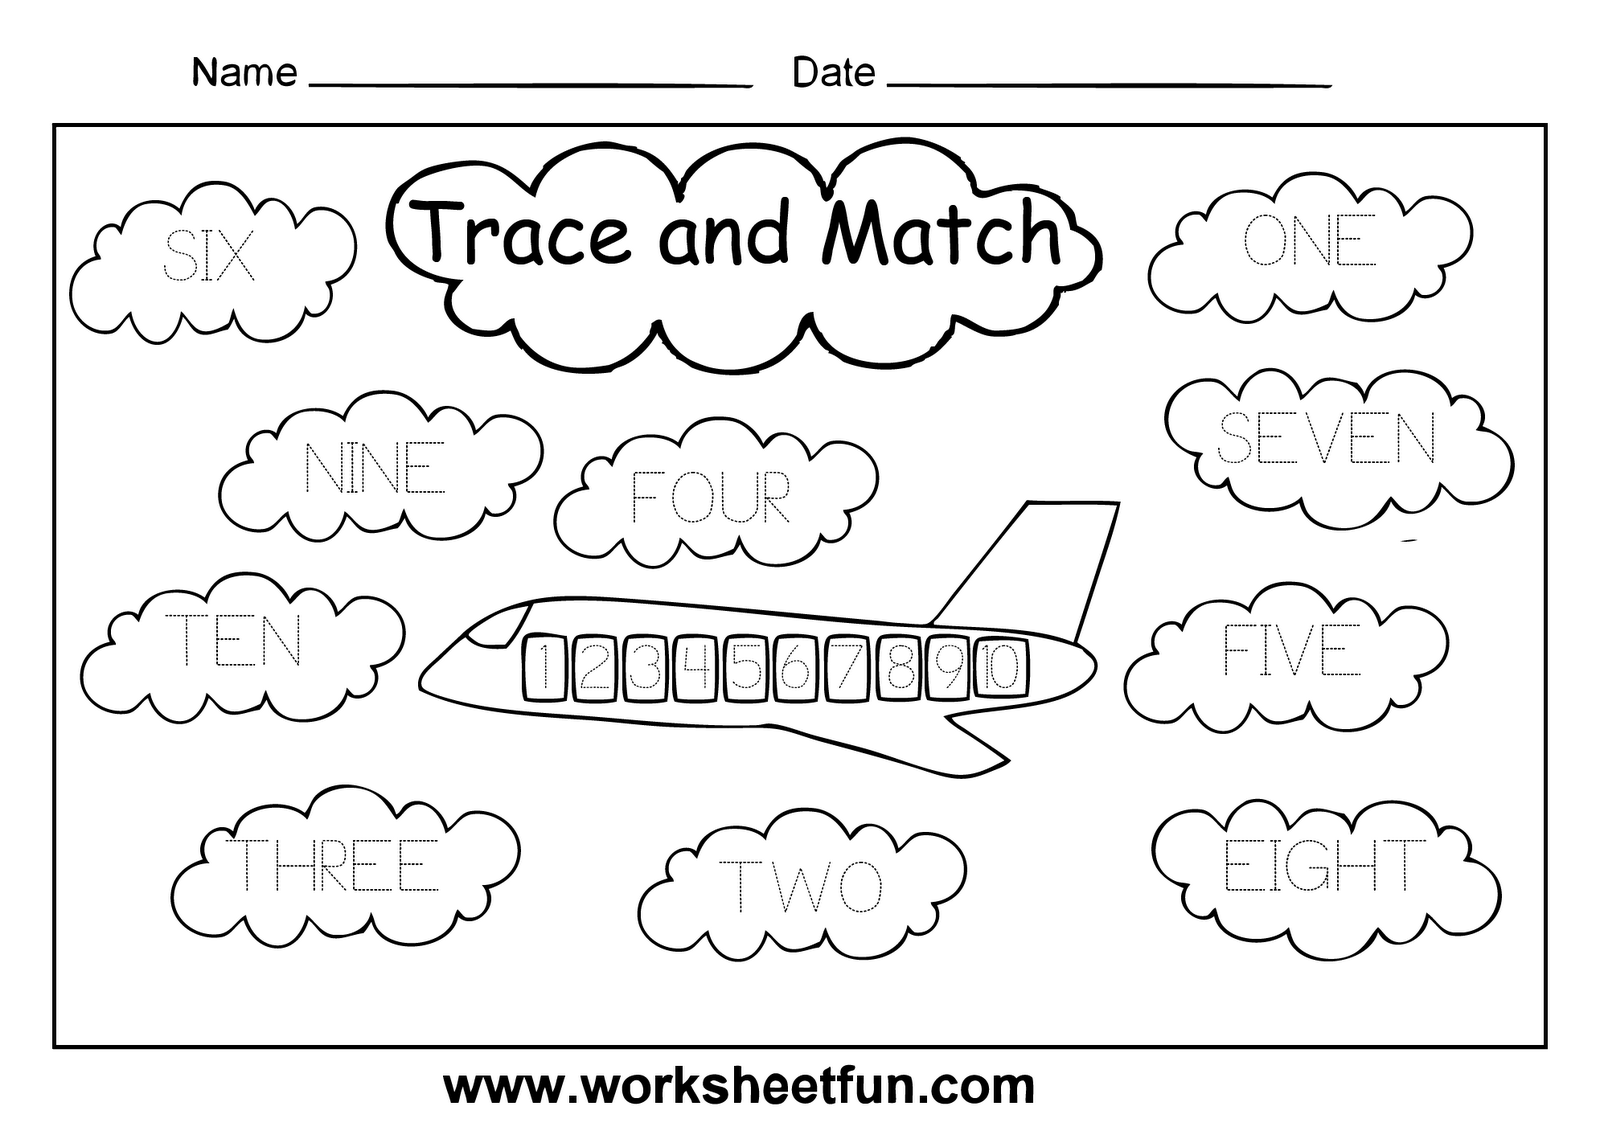 Proatmealus  Picturesque Numbers Worksheet    Narrativamente With Licious Polygons In The Coordinate Plane Worksheet Besides Worksheet   Area Of Trapezoids Rhombi And Kites Answers Furthermore Simple Past Tense Worksheets For Grade  With Beautiful Trace Evidence Worksheet Answers Also Cvc Worksheets For Kindergarten In Addition Preschool Numbers Worksheets And Pa Child Support Worksheet As Well As Photosynthesis Diagram Worksheet Answers Additionally Downloadable Budget Worksheets From Narrativamentecom With Proatmealus  Licious Numbers Worksheet    Narrativamente With Beautiful Polygons In The Coordinate Plane Worksheet Besides Worksheet   Area Of Trapezoids Rhombi And Kites Answers Furthermore Simple Past Tense Worksheets For Grade  And Picturesque Trace Evidence Worksheet Answers Also Cvc Worksheets For Kindergarten In Addition Preschool Numbers Worksheets From Narrativamentecom